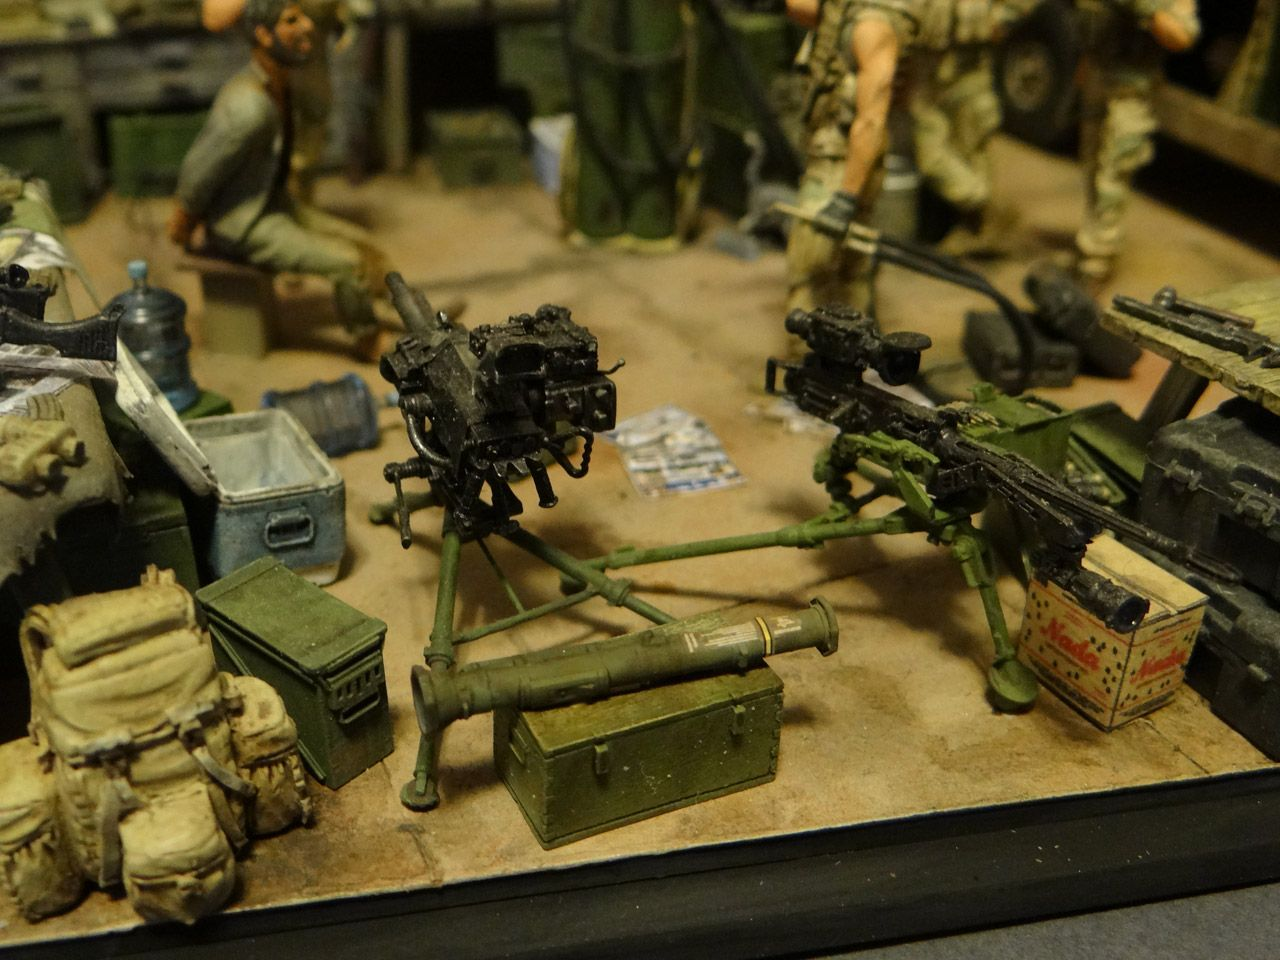 Dioramas and Vignettes: Enforcement to democracy, photo #20